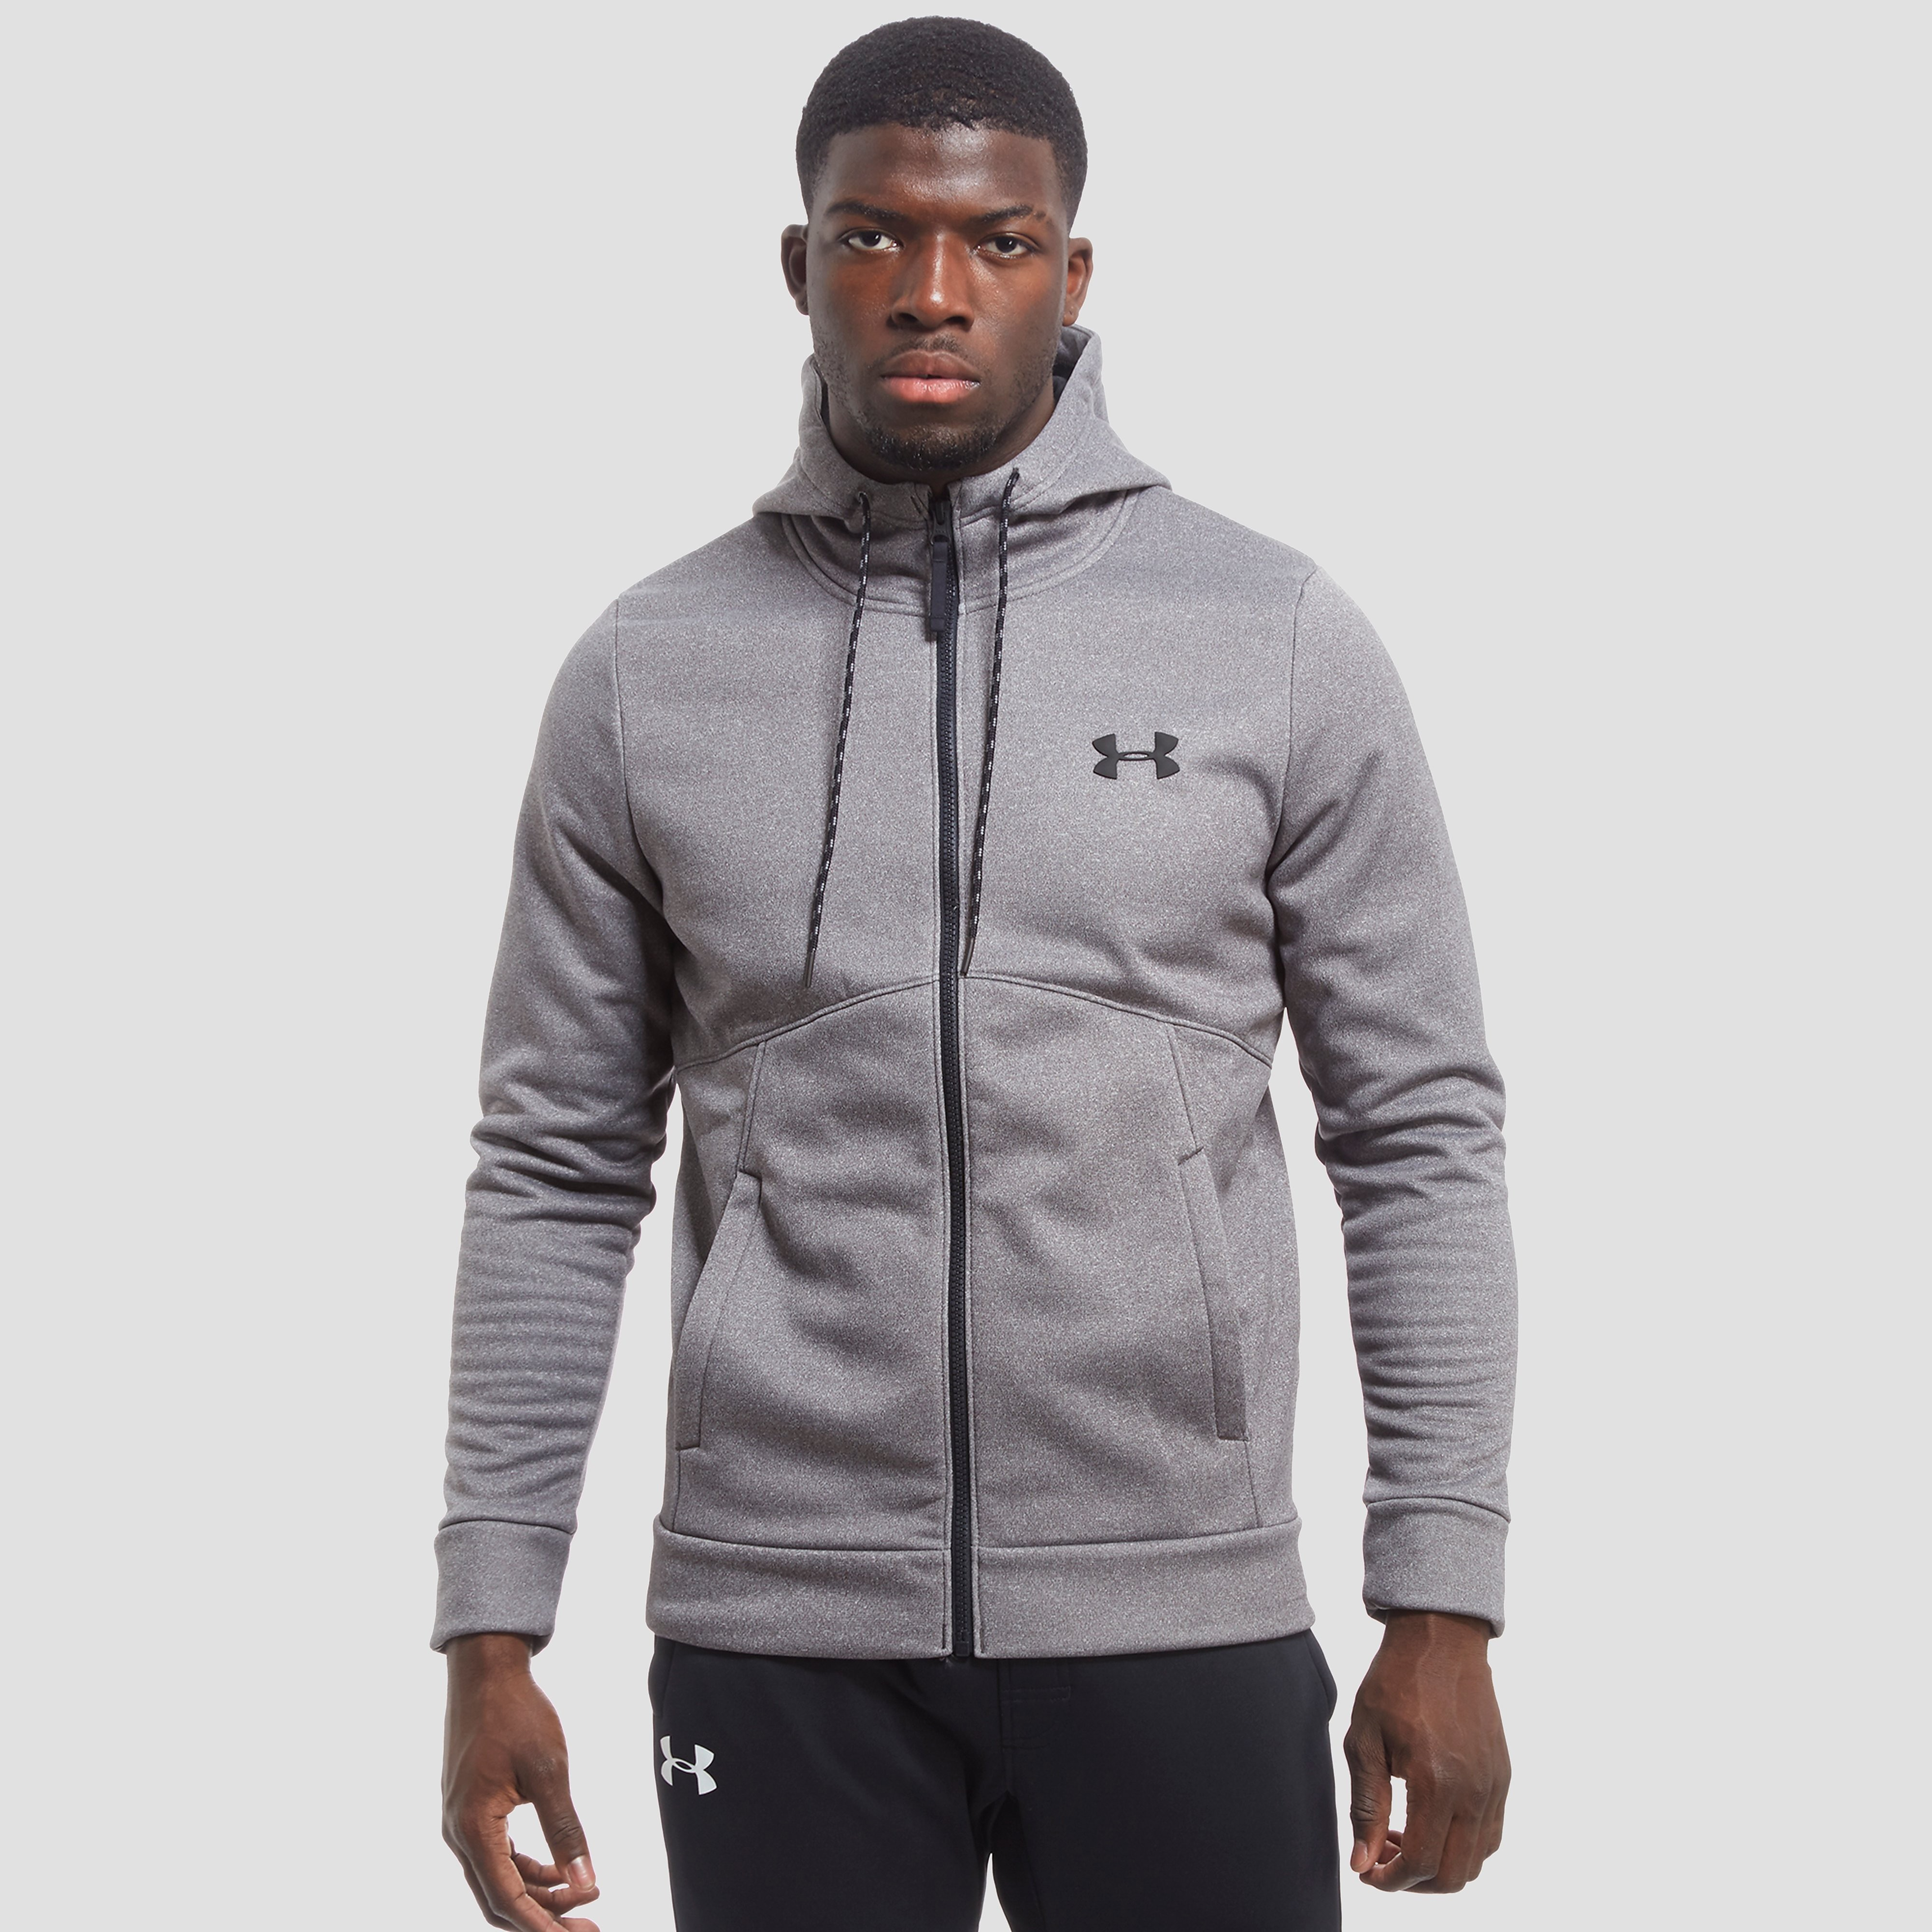 Under Armour Men's Icon Full Zip Hoodie